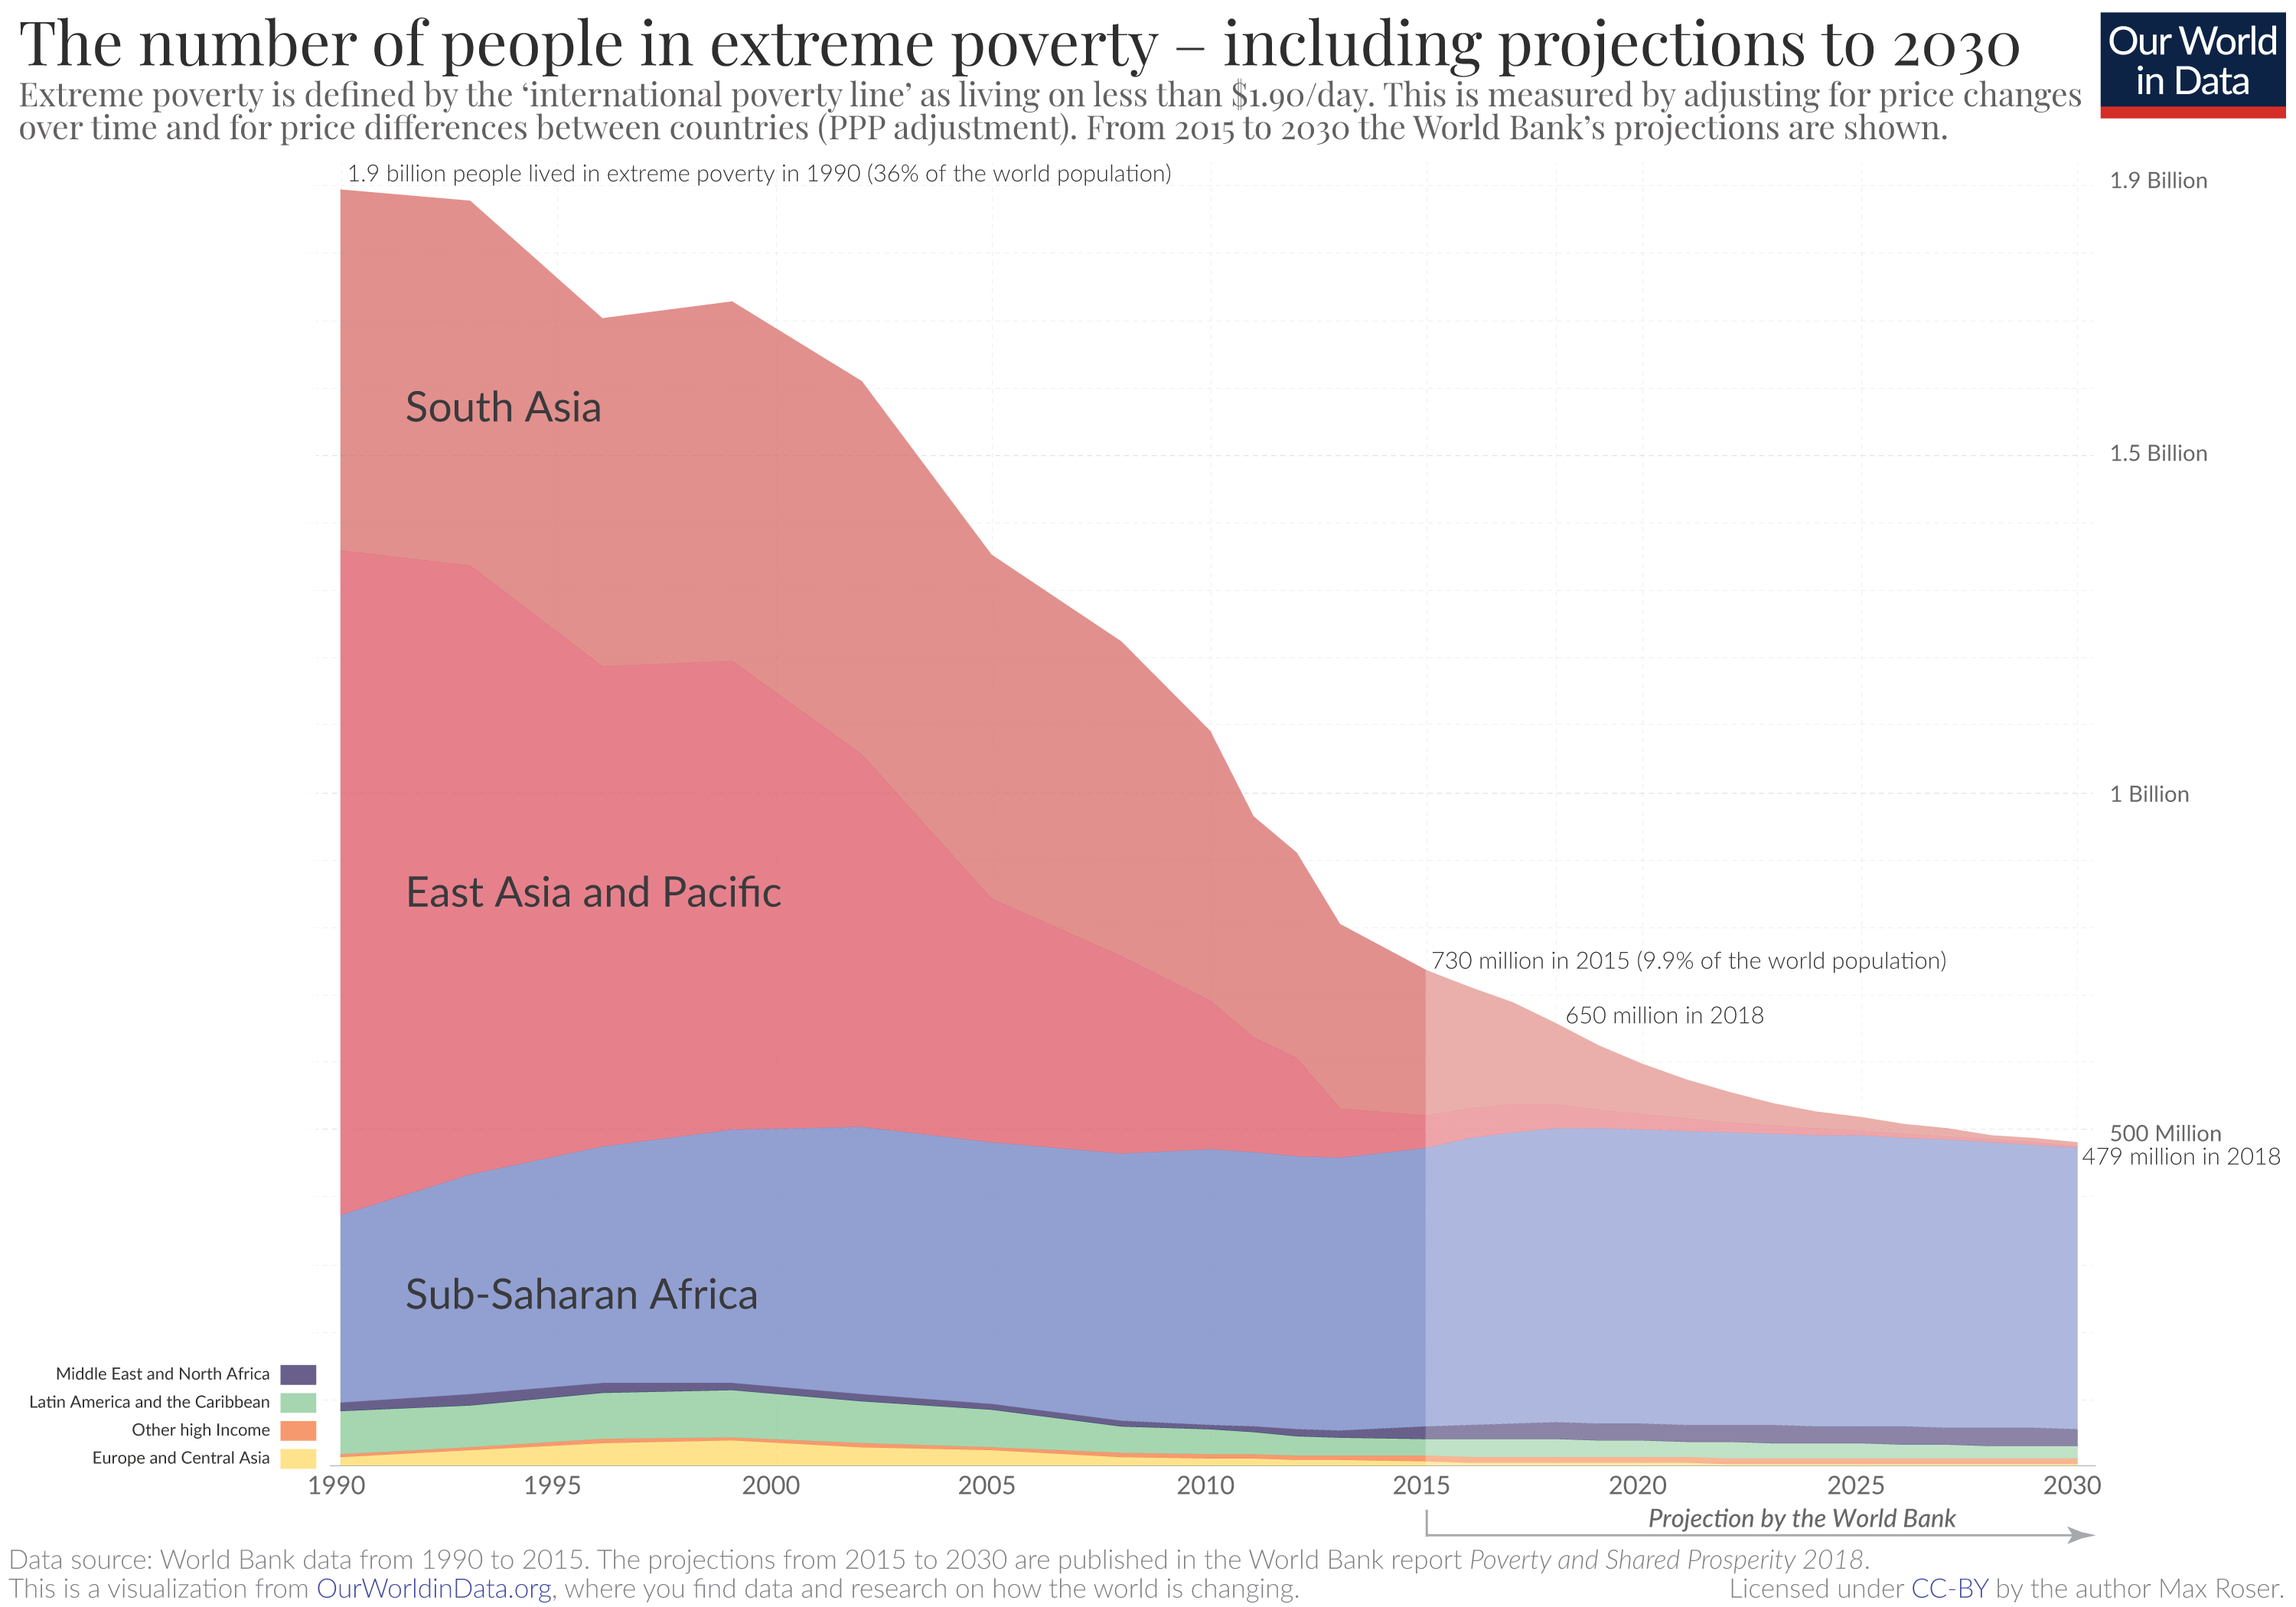 Extreme Poverty since 1990